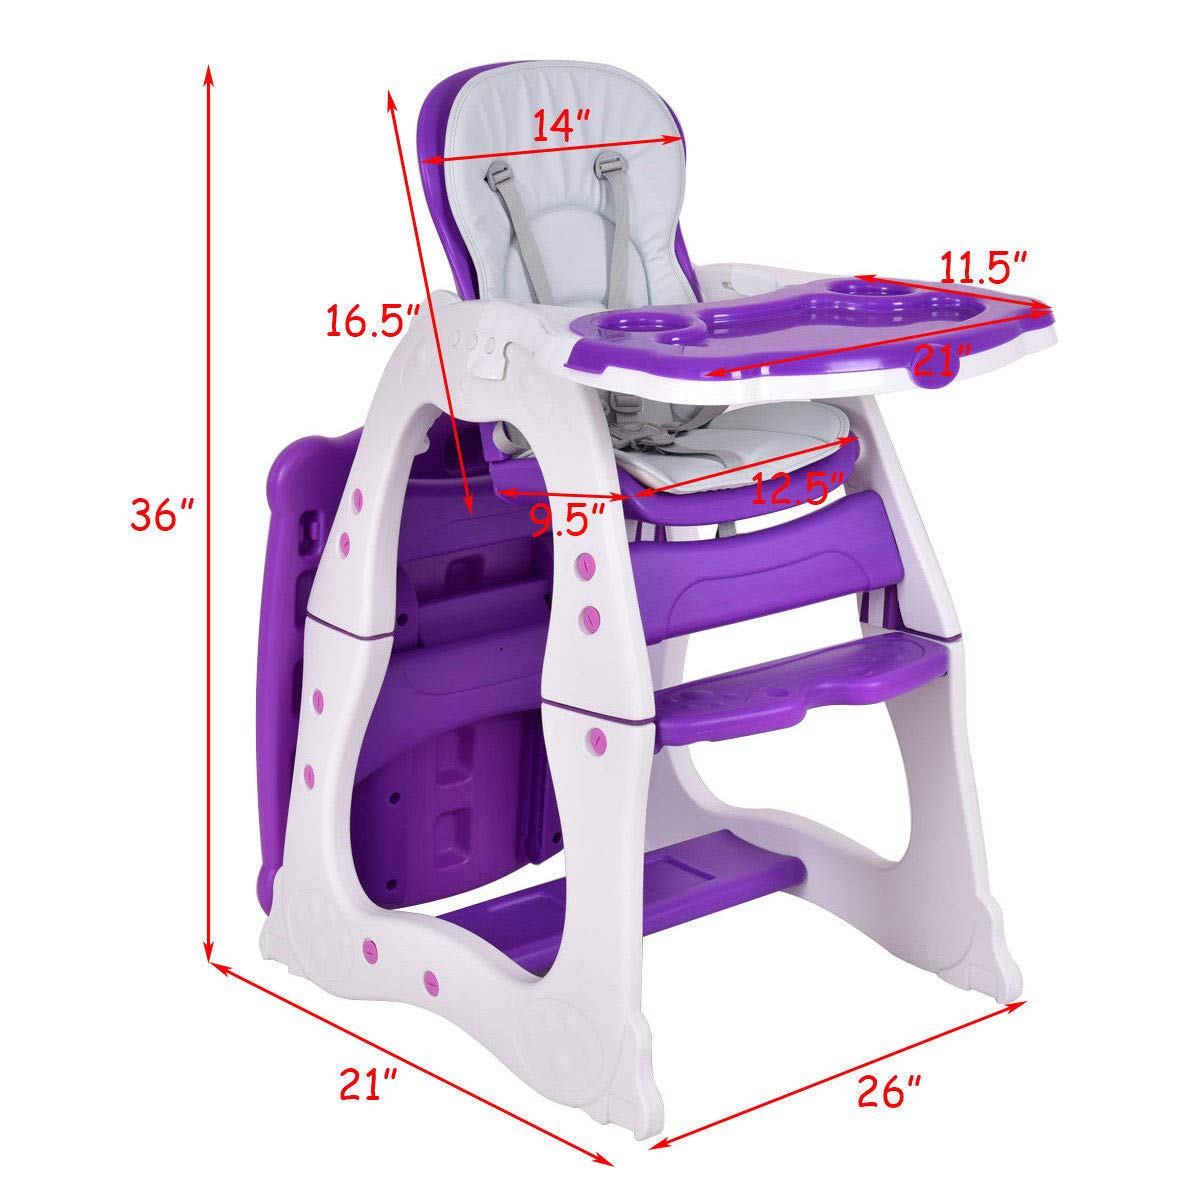 3 in 1 Baby High Chair Convertible Play Table Seat Booster Toddler Feeding Tray 3 Positions Available, Reclining, Adjustable seat. Hatchback Highball Suitable Age from 6 Months to 4 Years